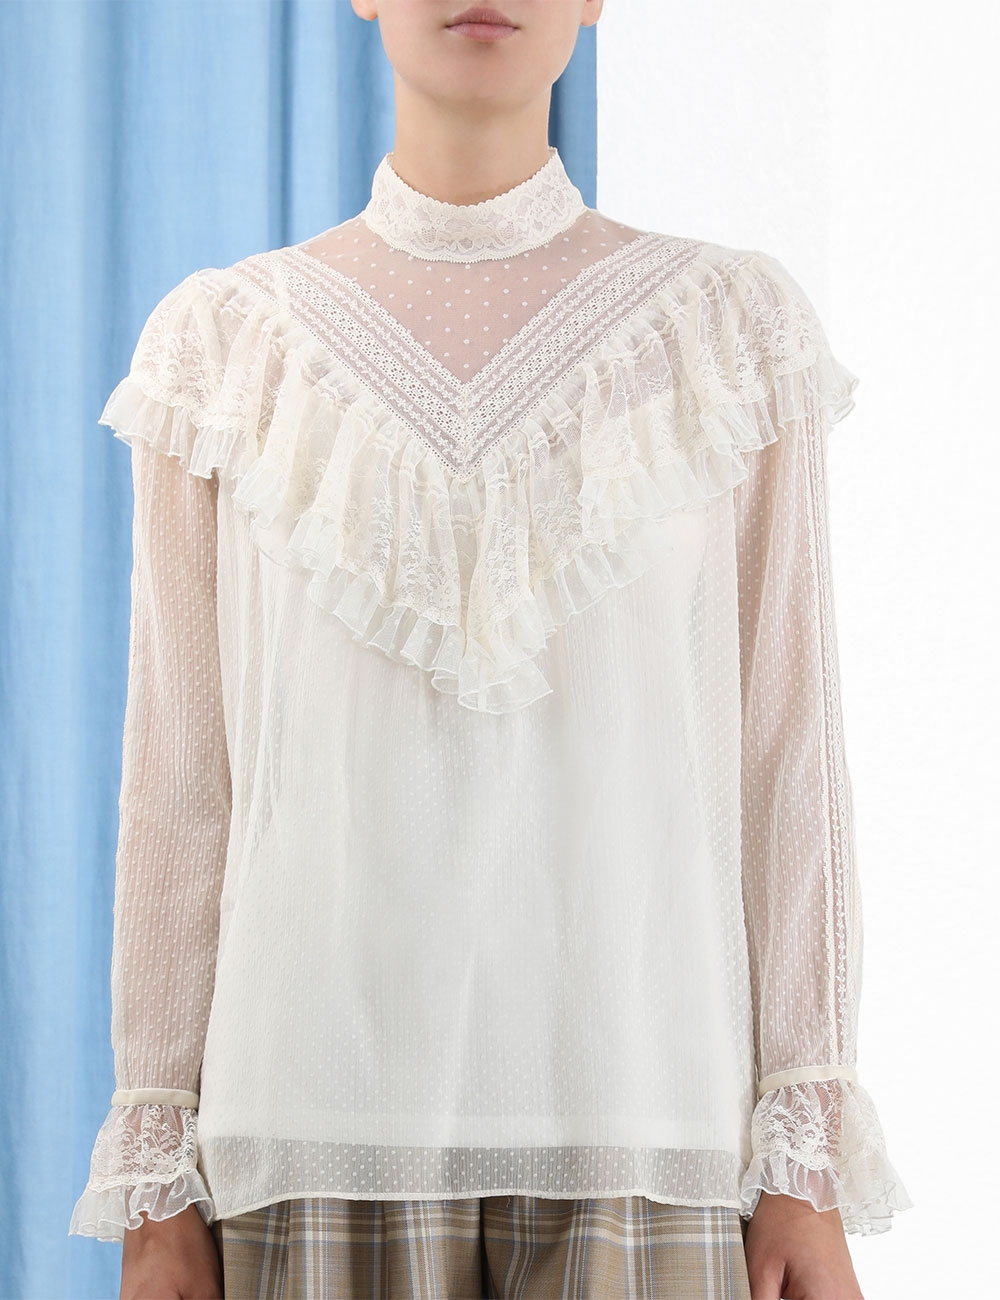 Glassy Frilled Lace Blouse